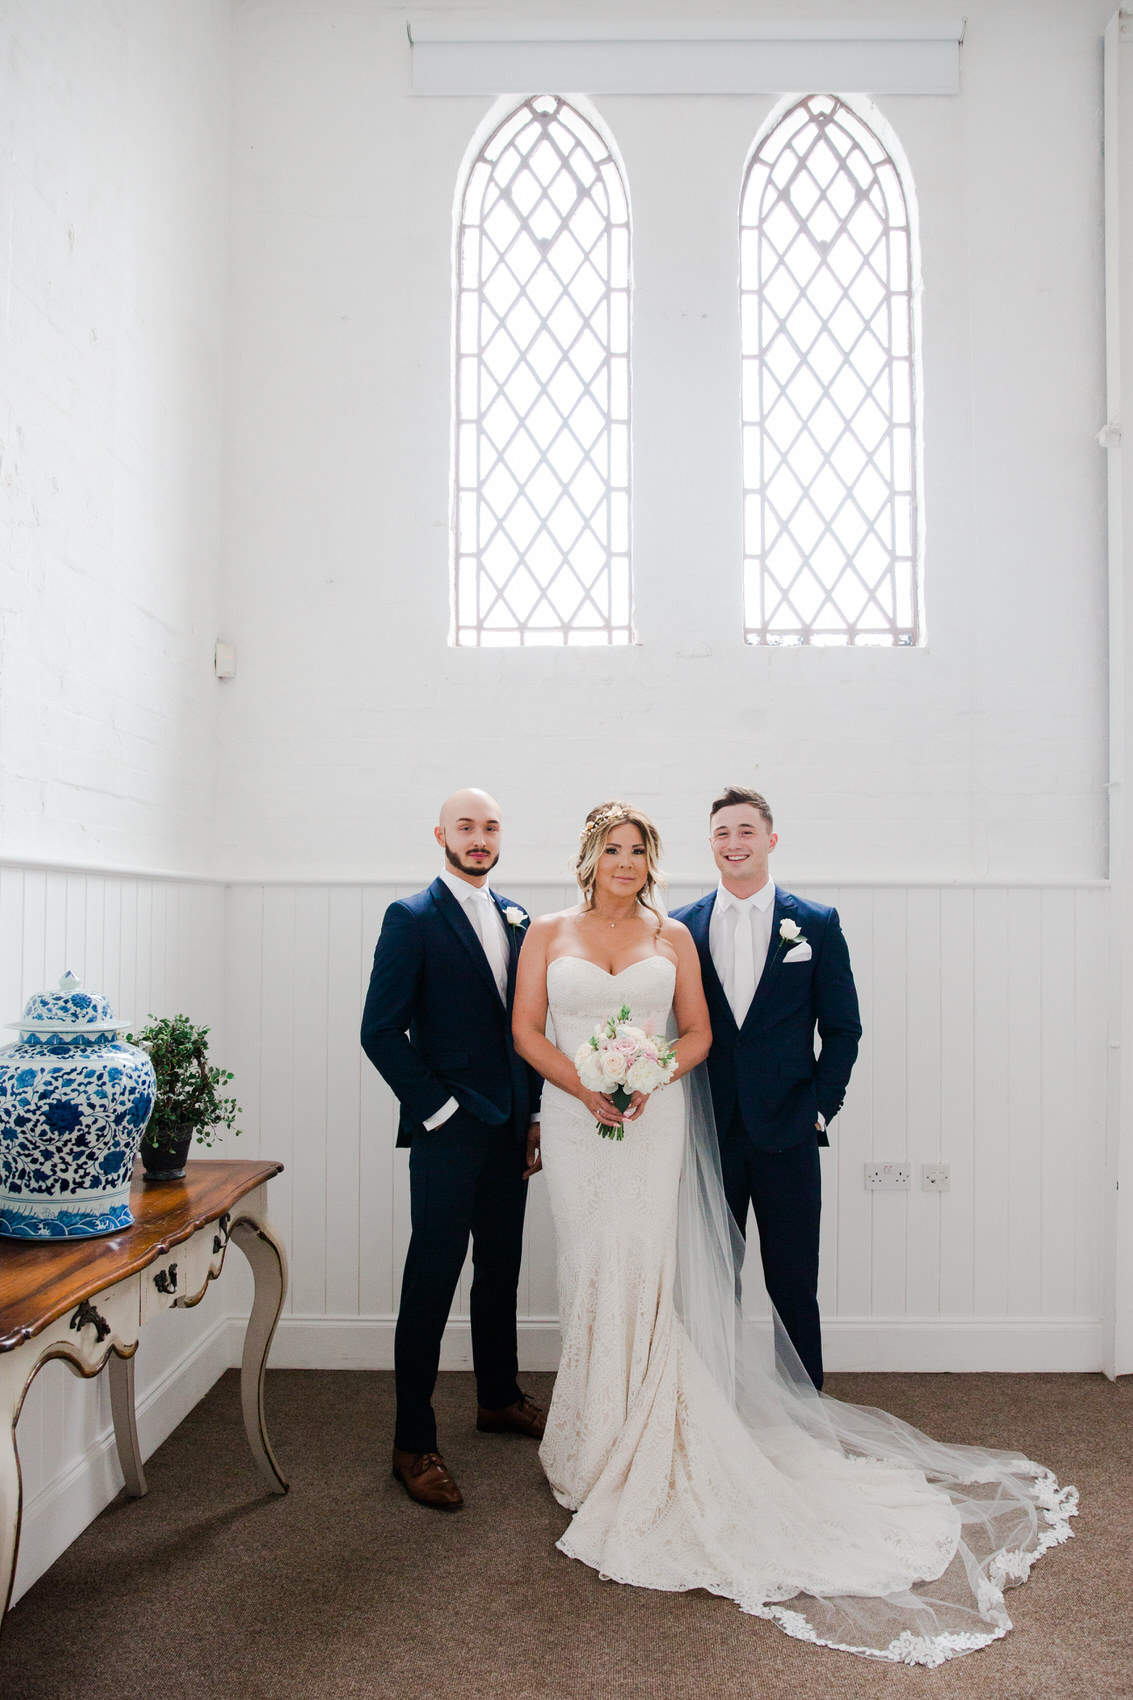 Glamorous Alternative Wedding at Fazeley Studios020